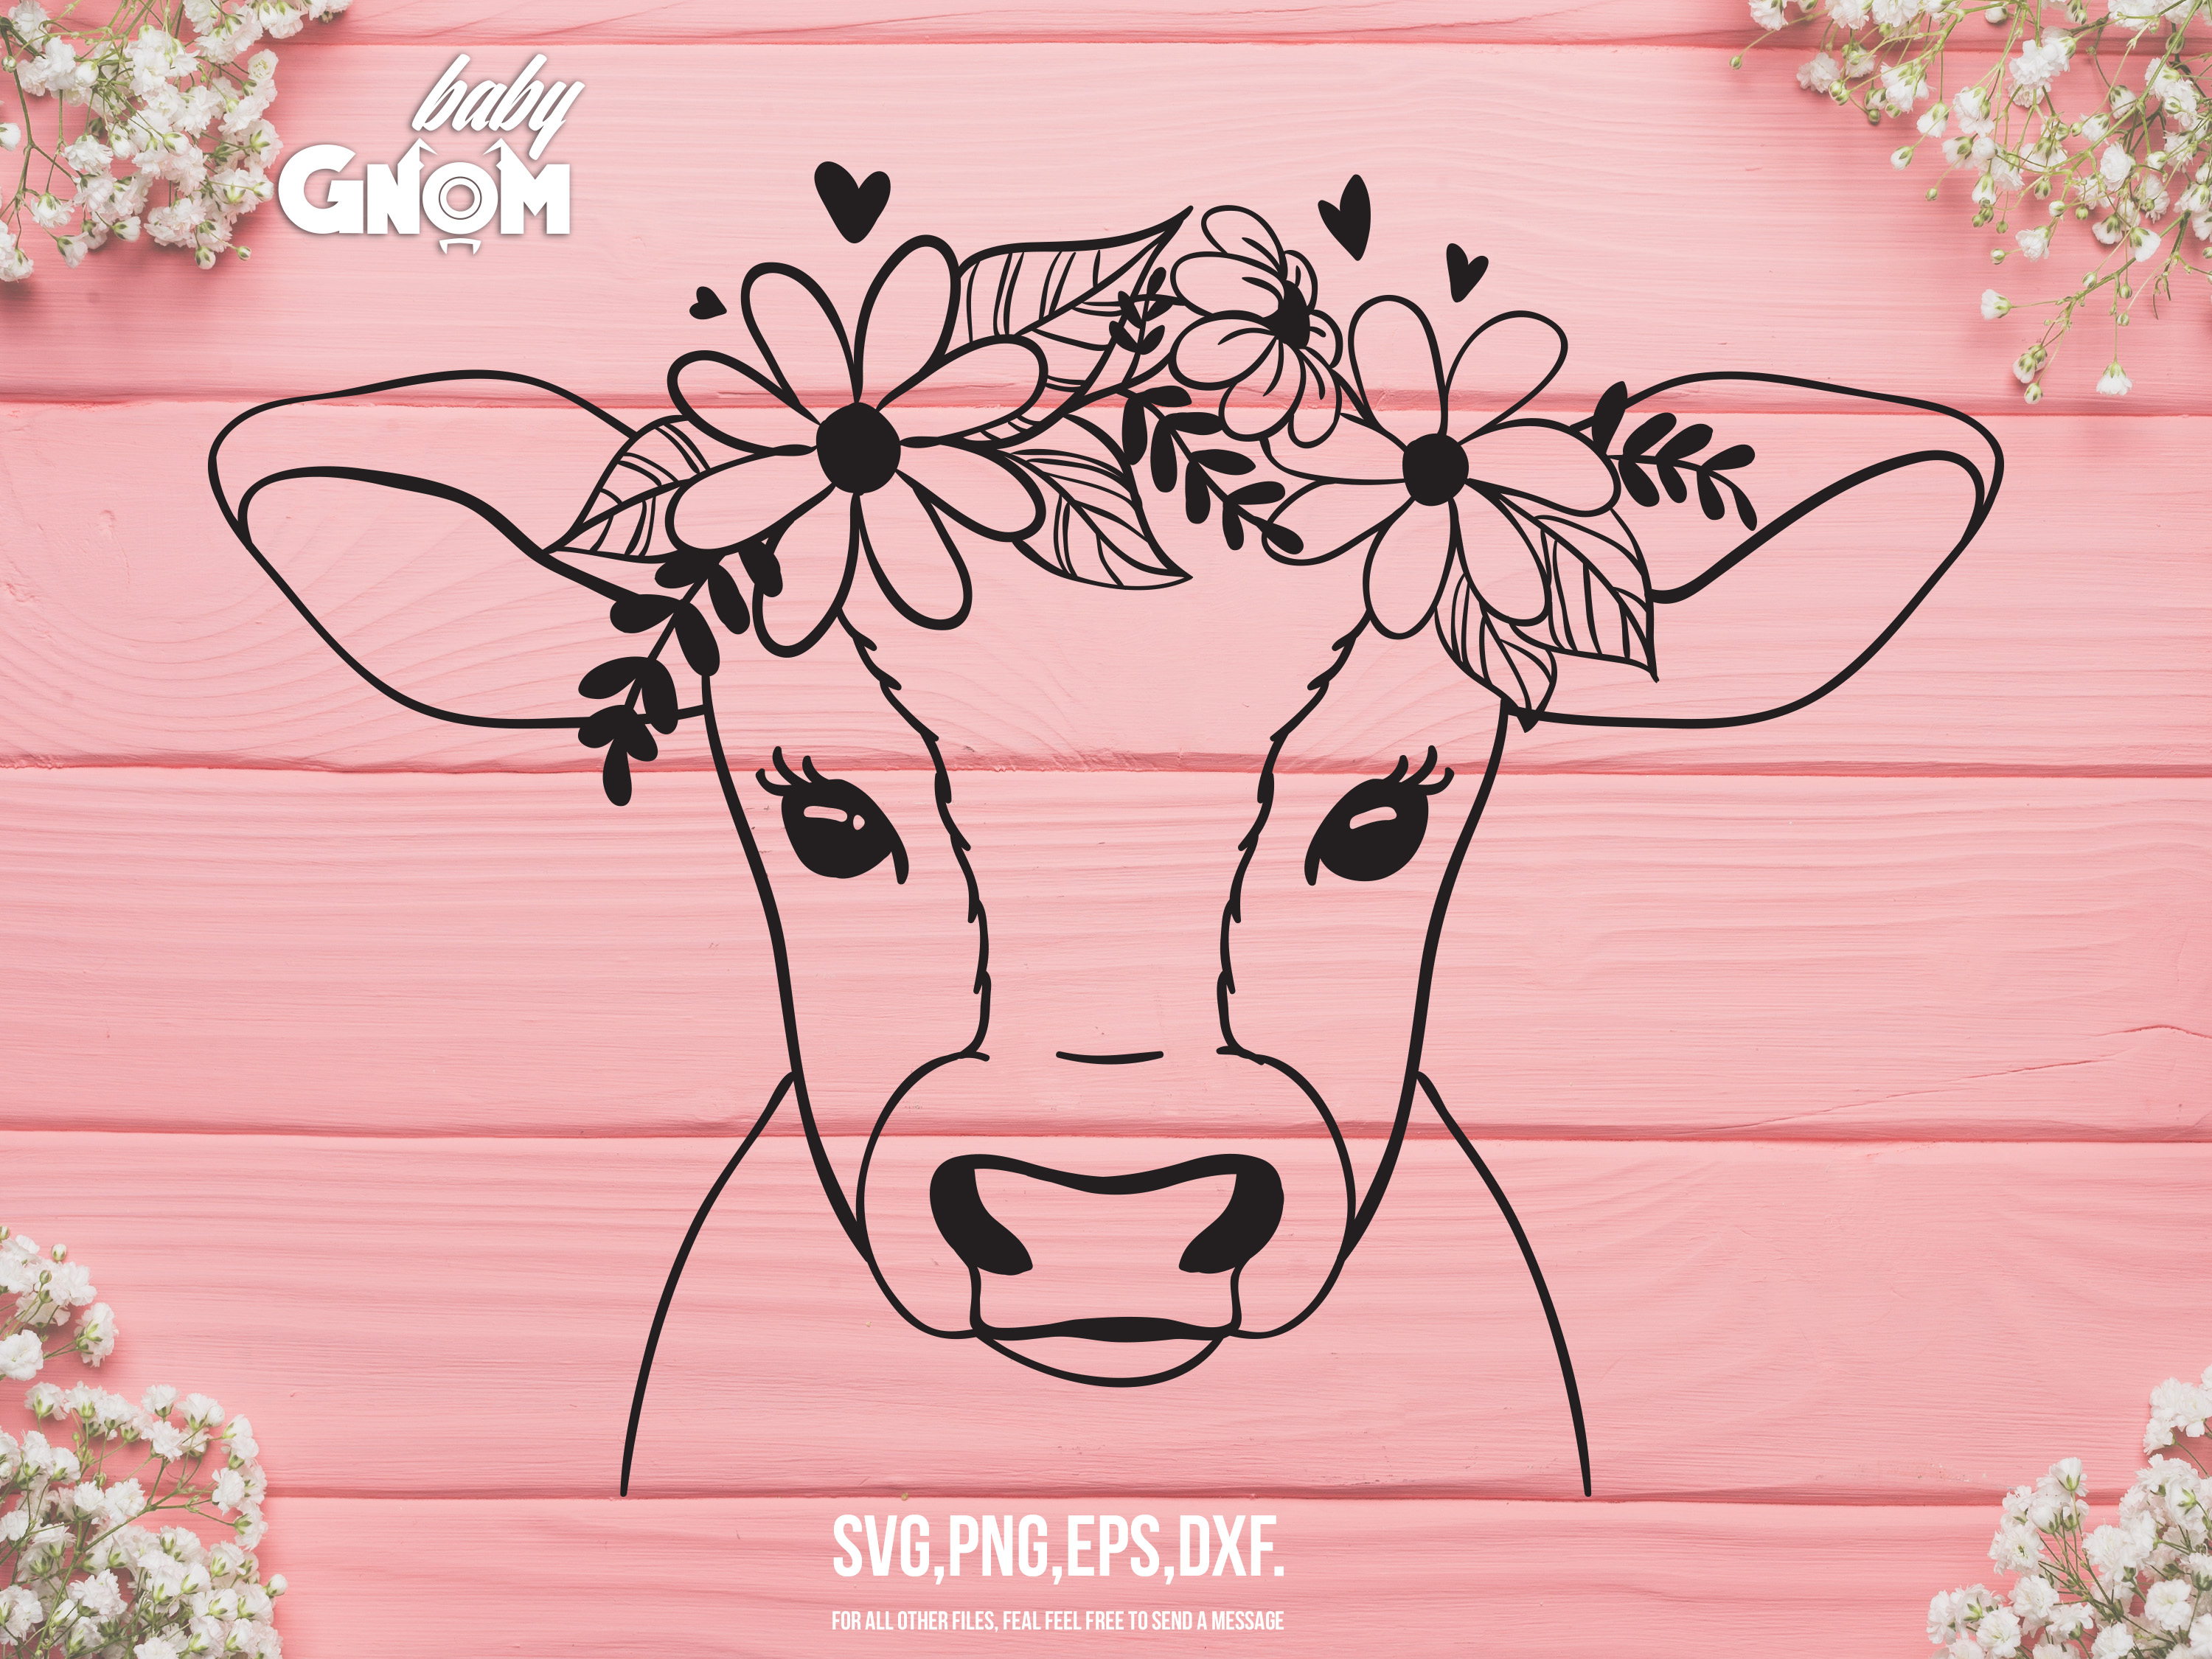 Cow with Flower Crown SVG File